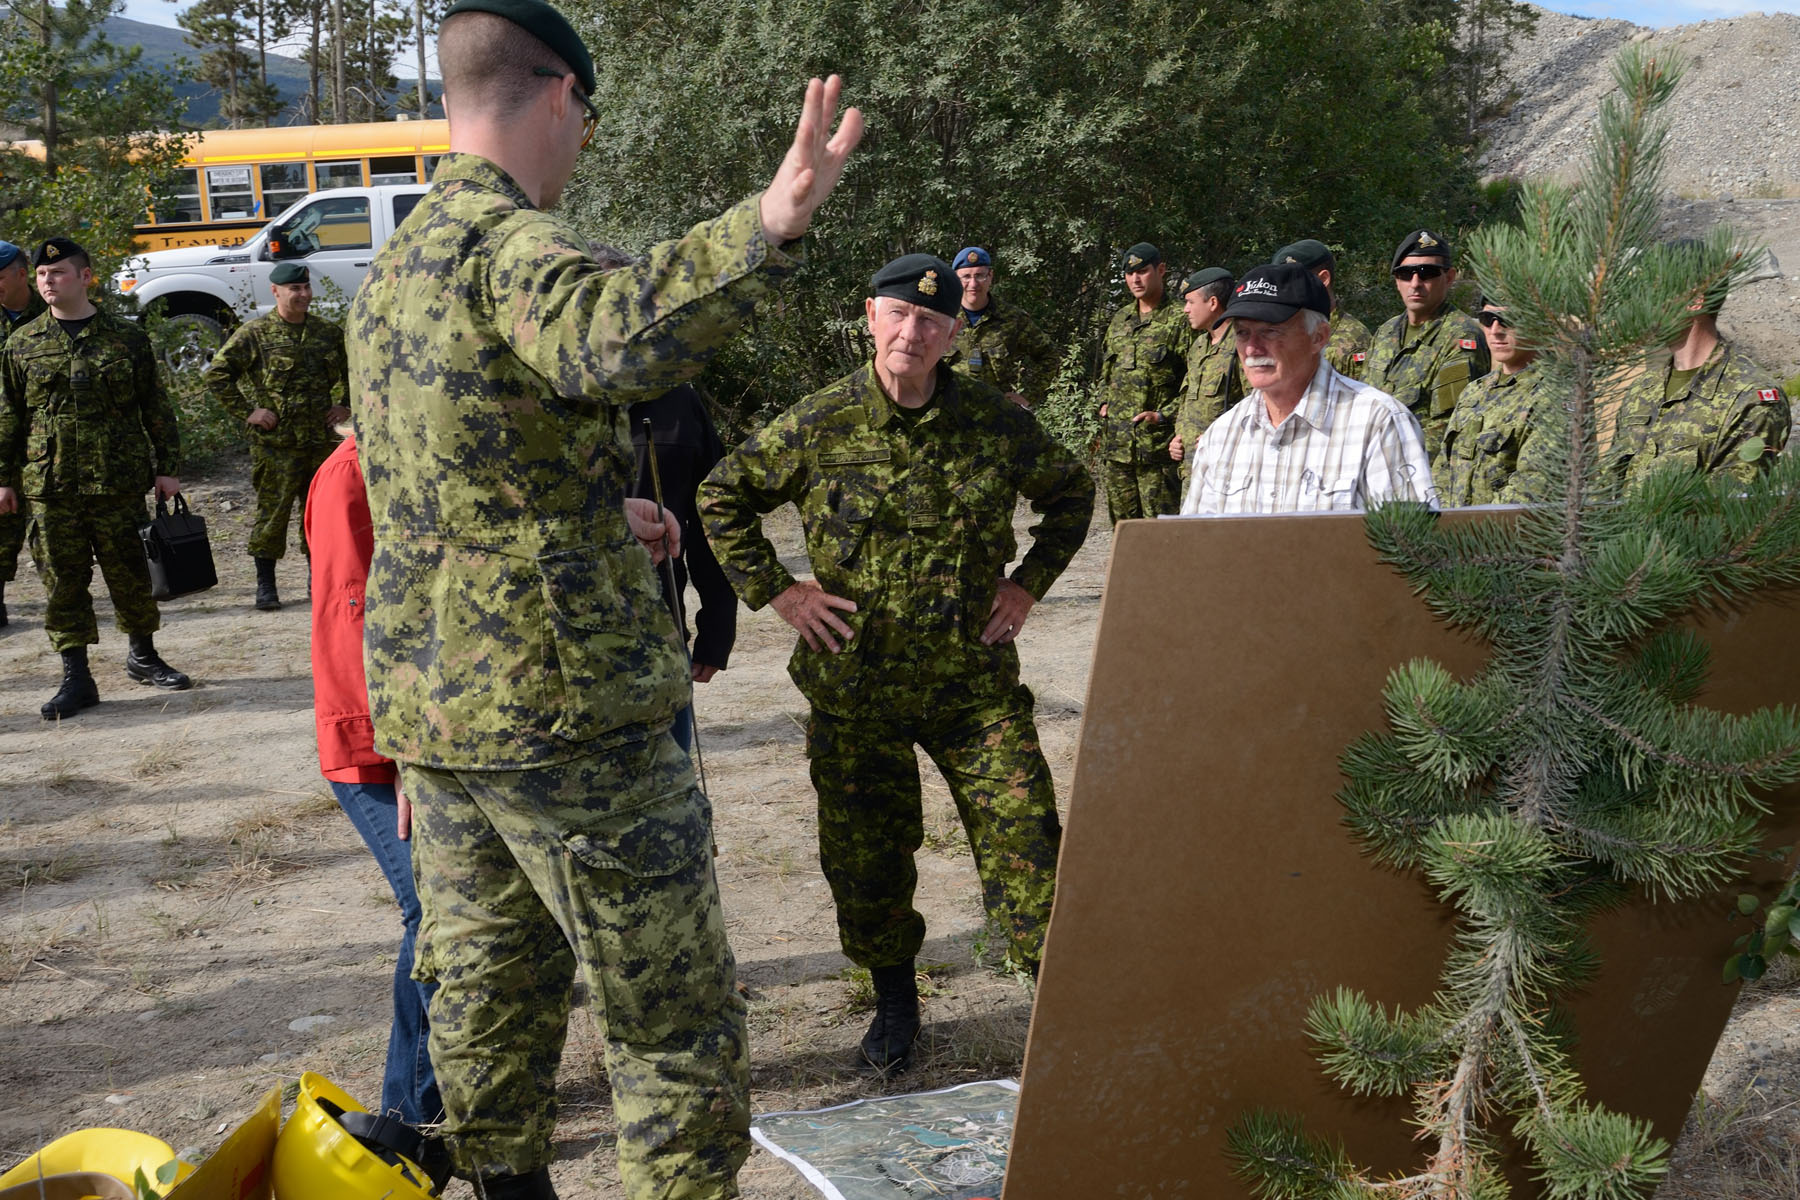 During his visit, the Governor General had the opportunity to witness first-hand the work of the Canadian Armed Forces in collaboration with territorial and municipal authorities during Operation NANOOK.